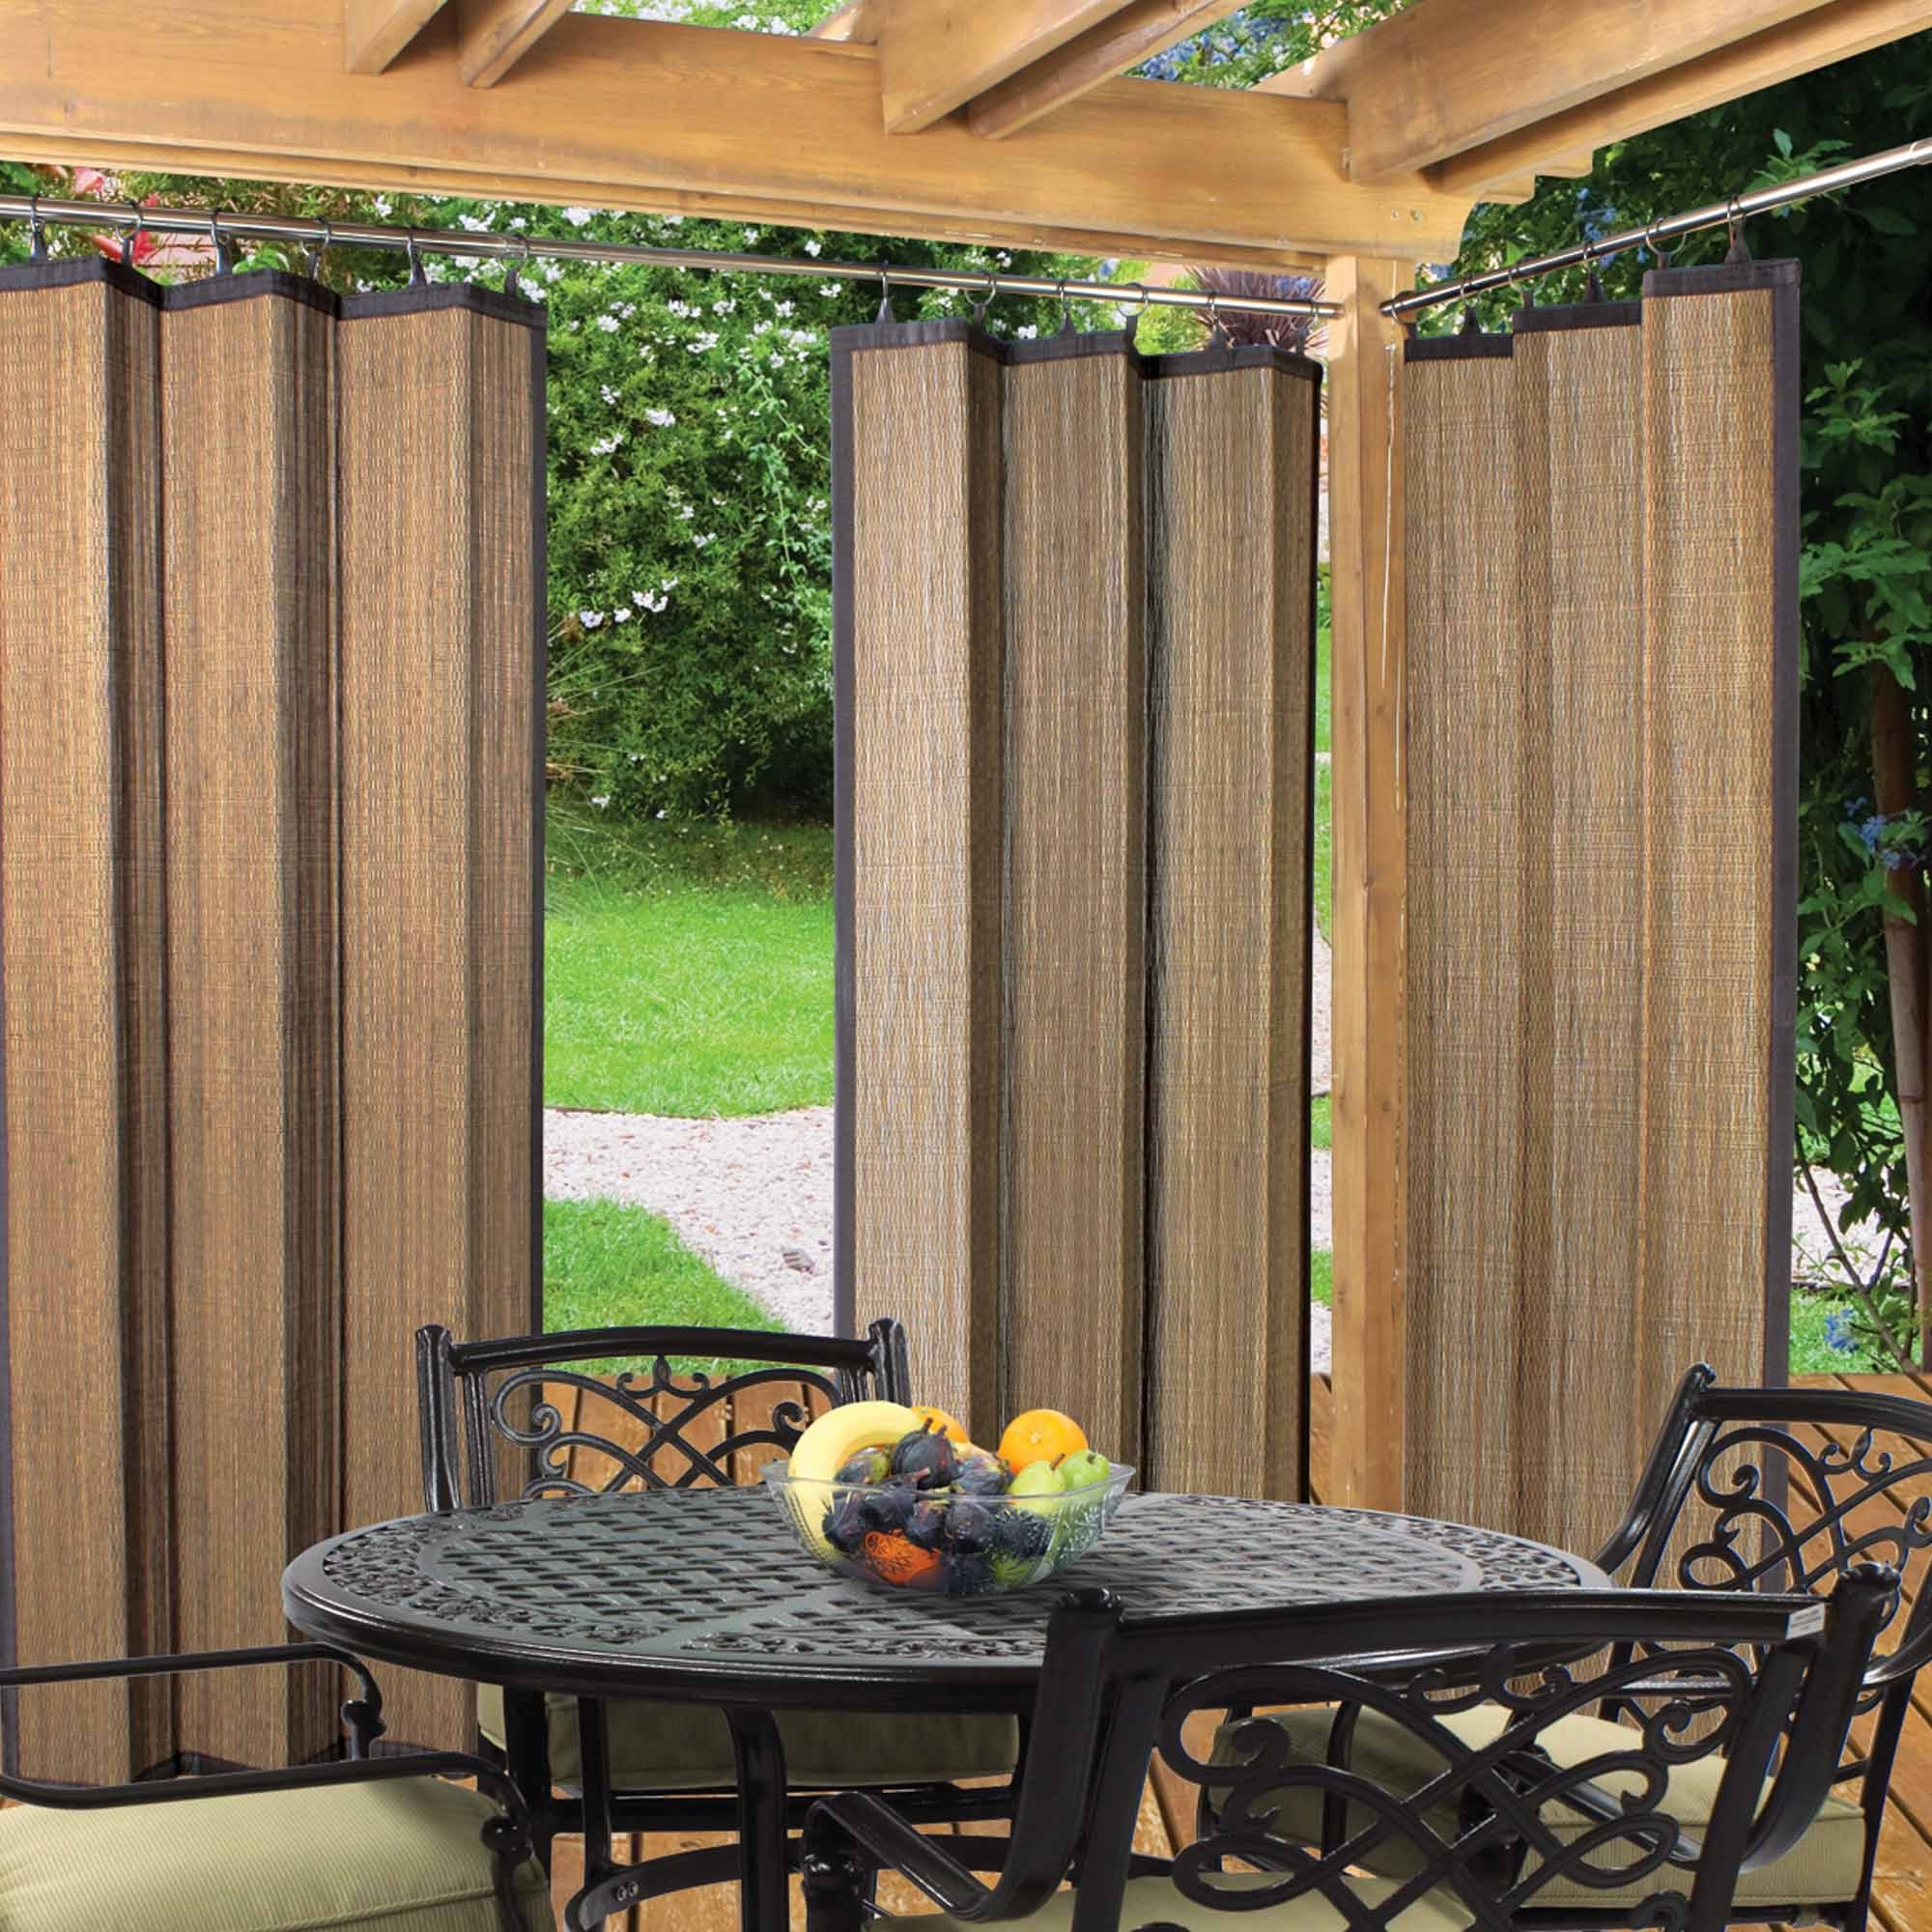 Bamboo Curtain For Patio (Image 2 of 20)